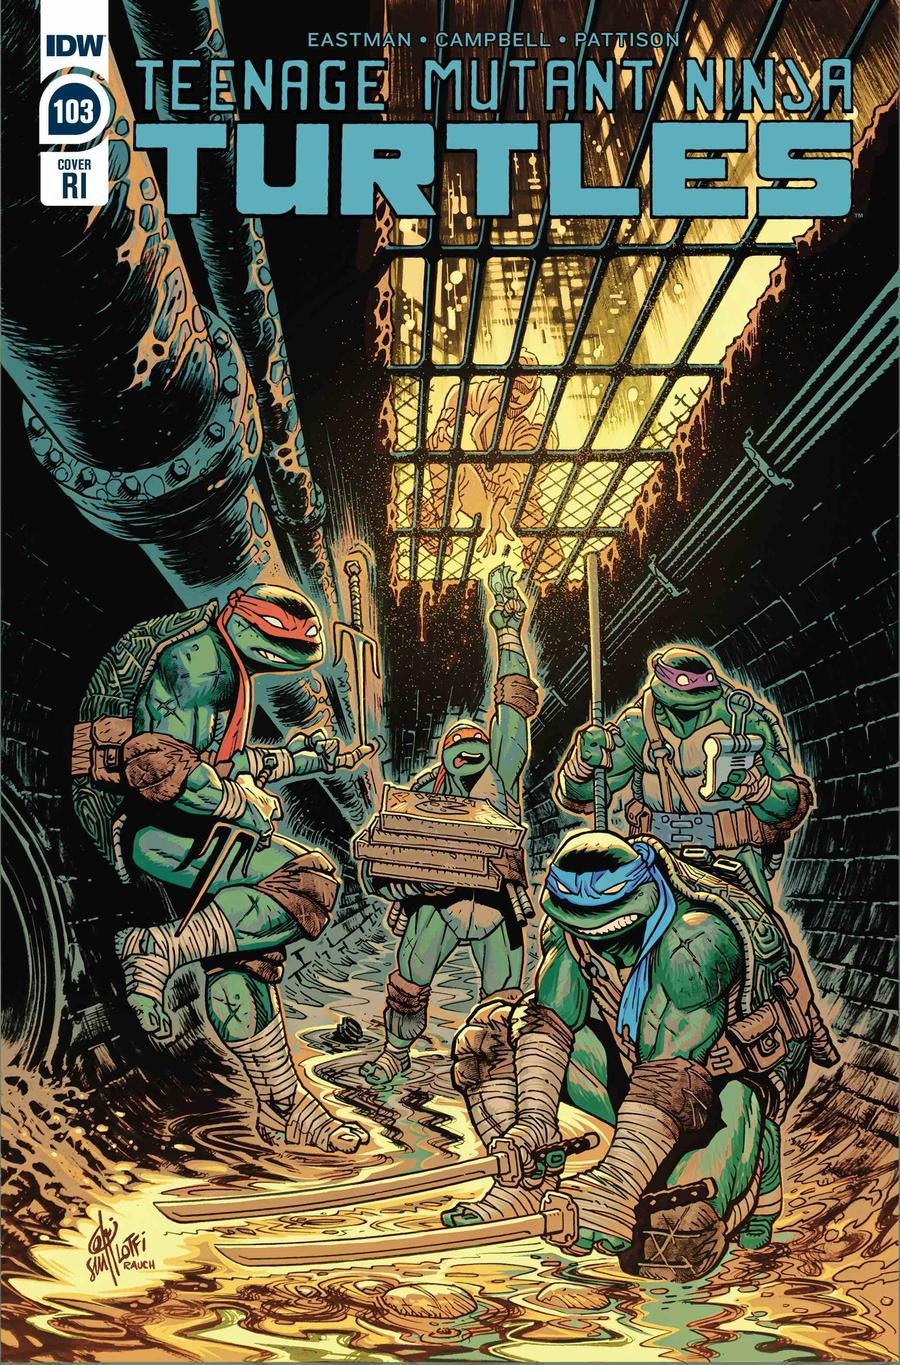 Teenage Mutant Ninja Turtles Vol 5 #103 Cover C Incentive Sam Lotfi Variant Cover